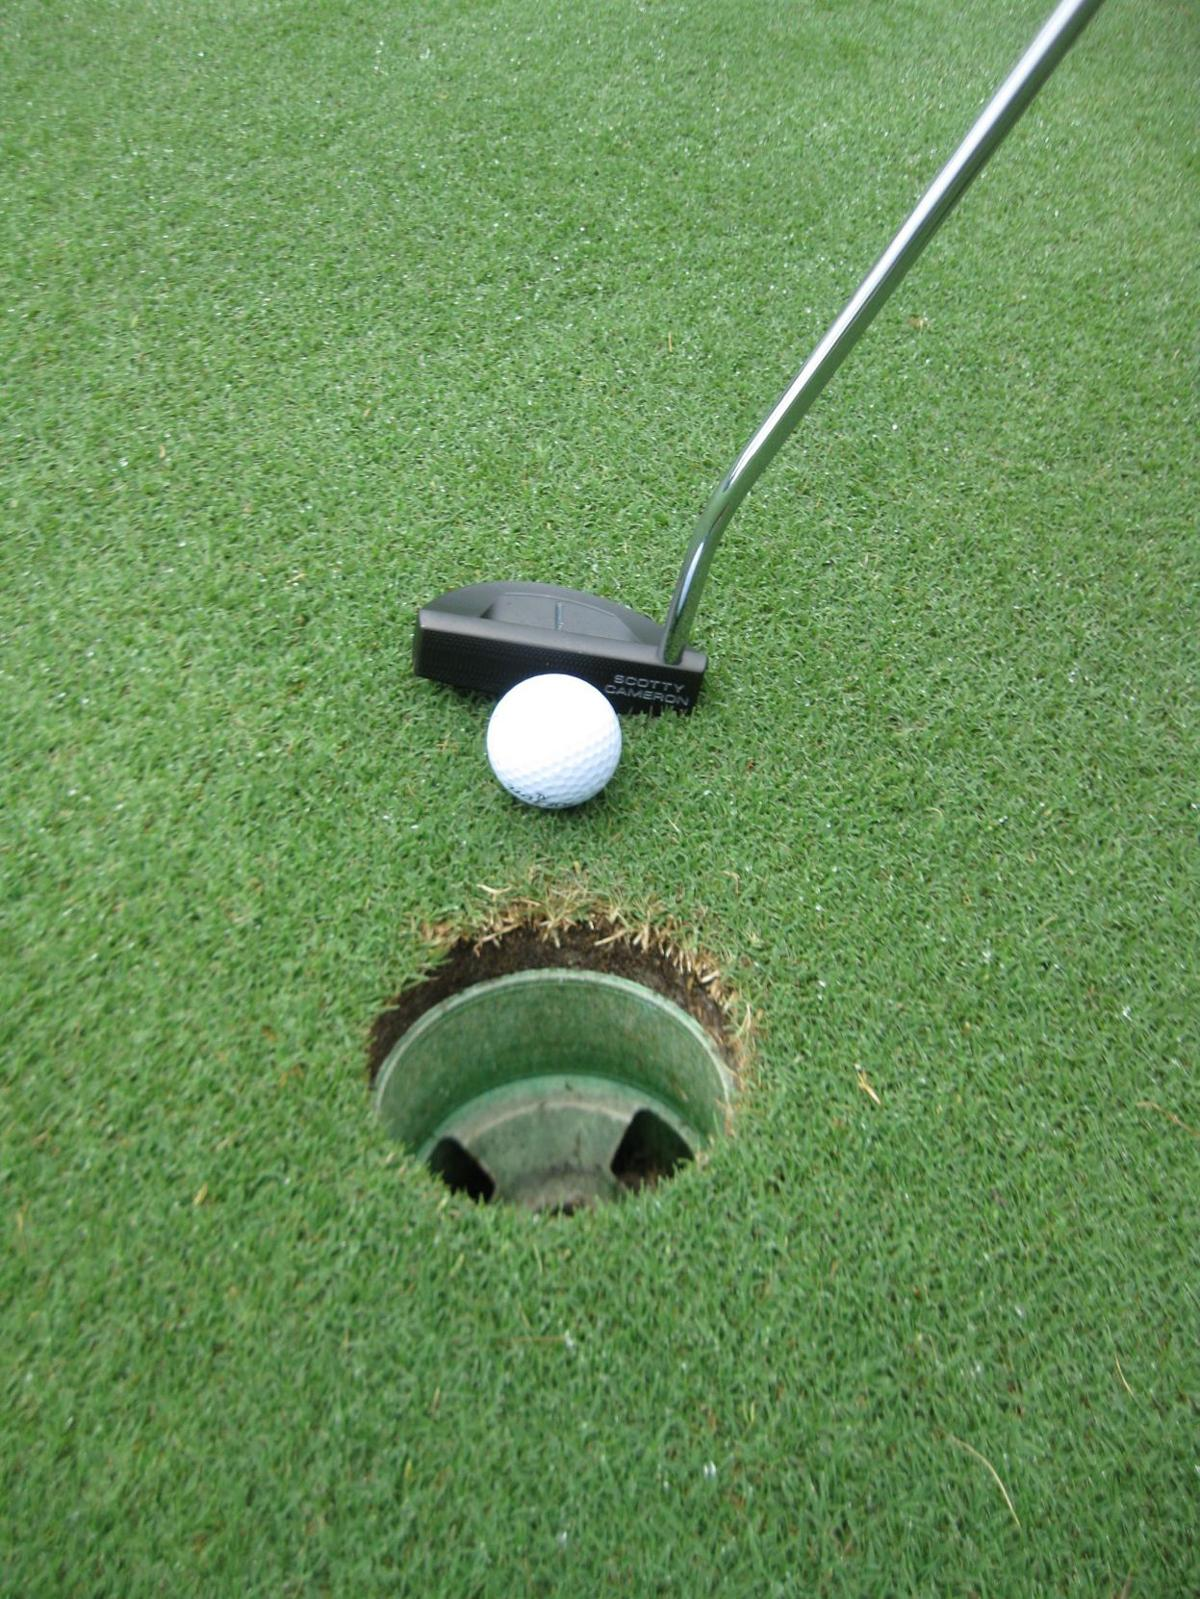 Registration opens for junior Drive, Chip and Putt competition open